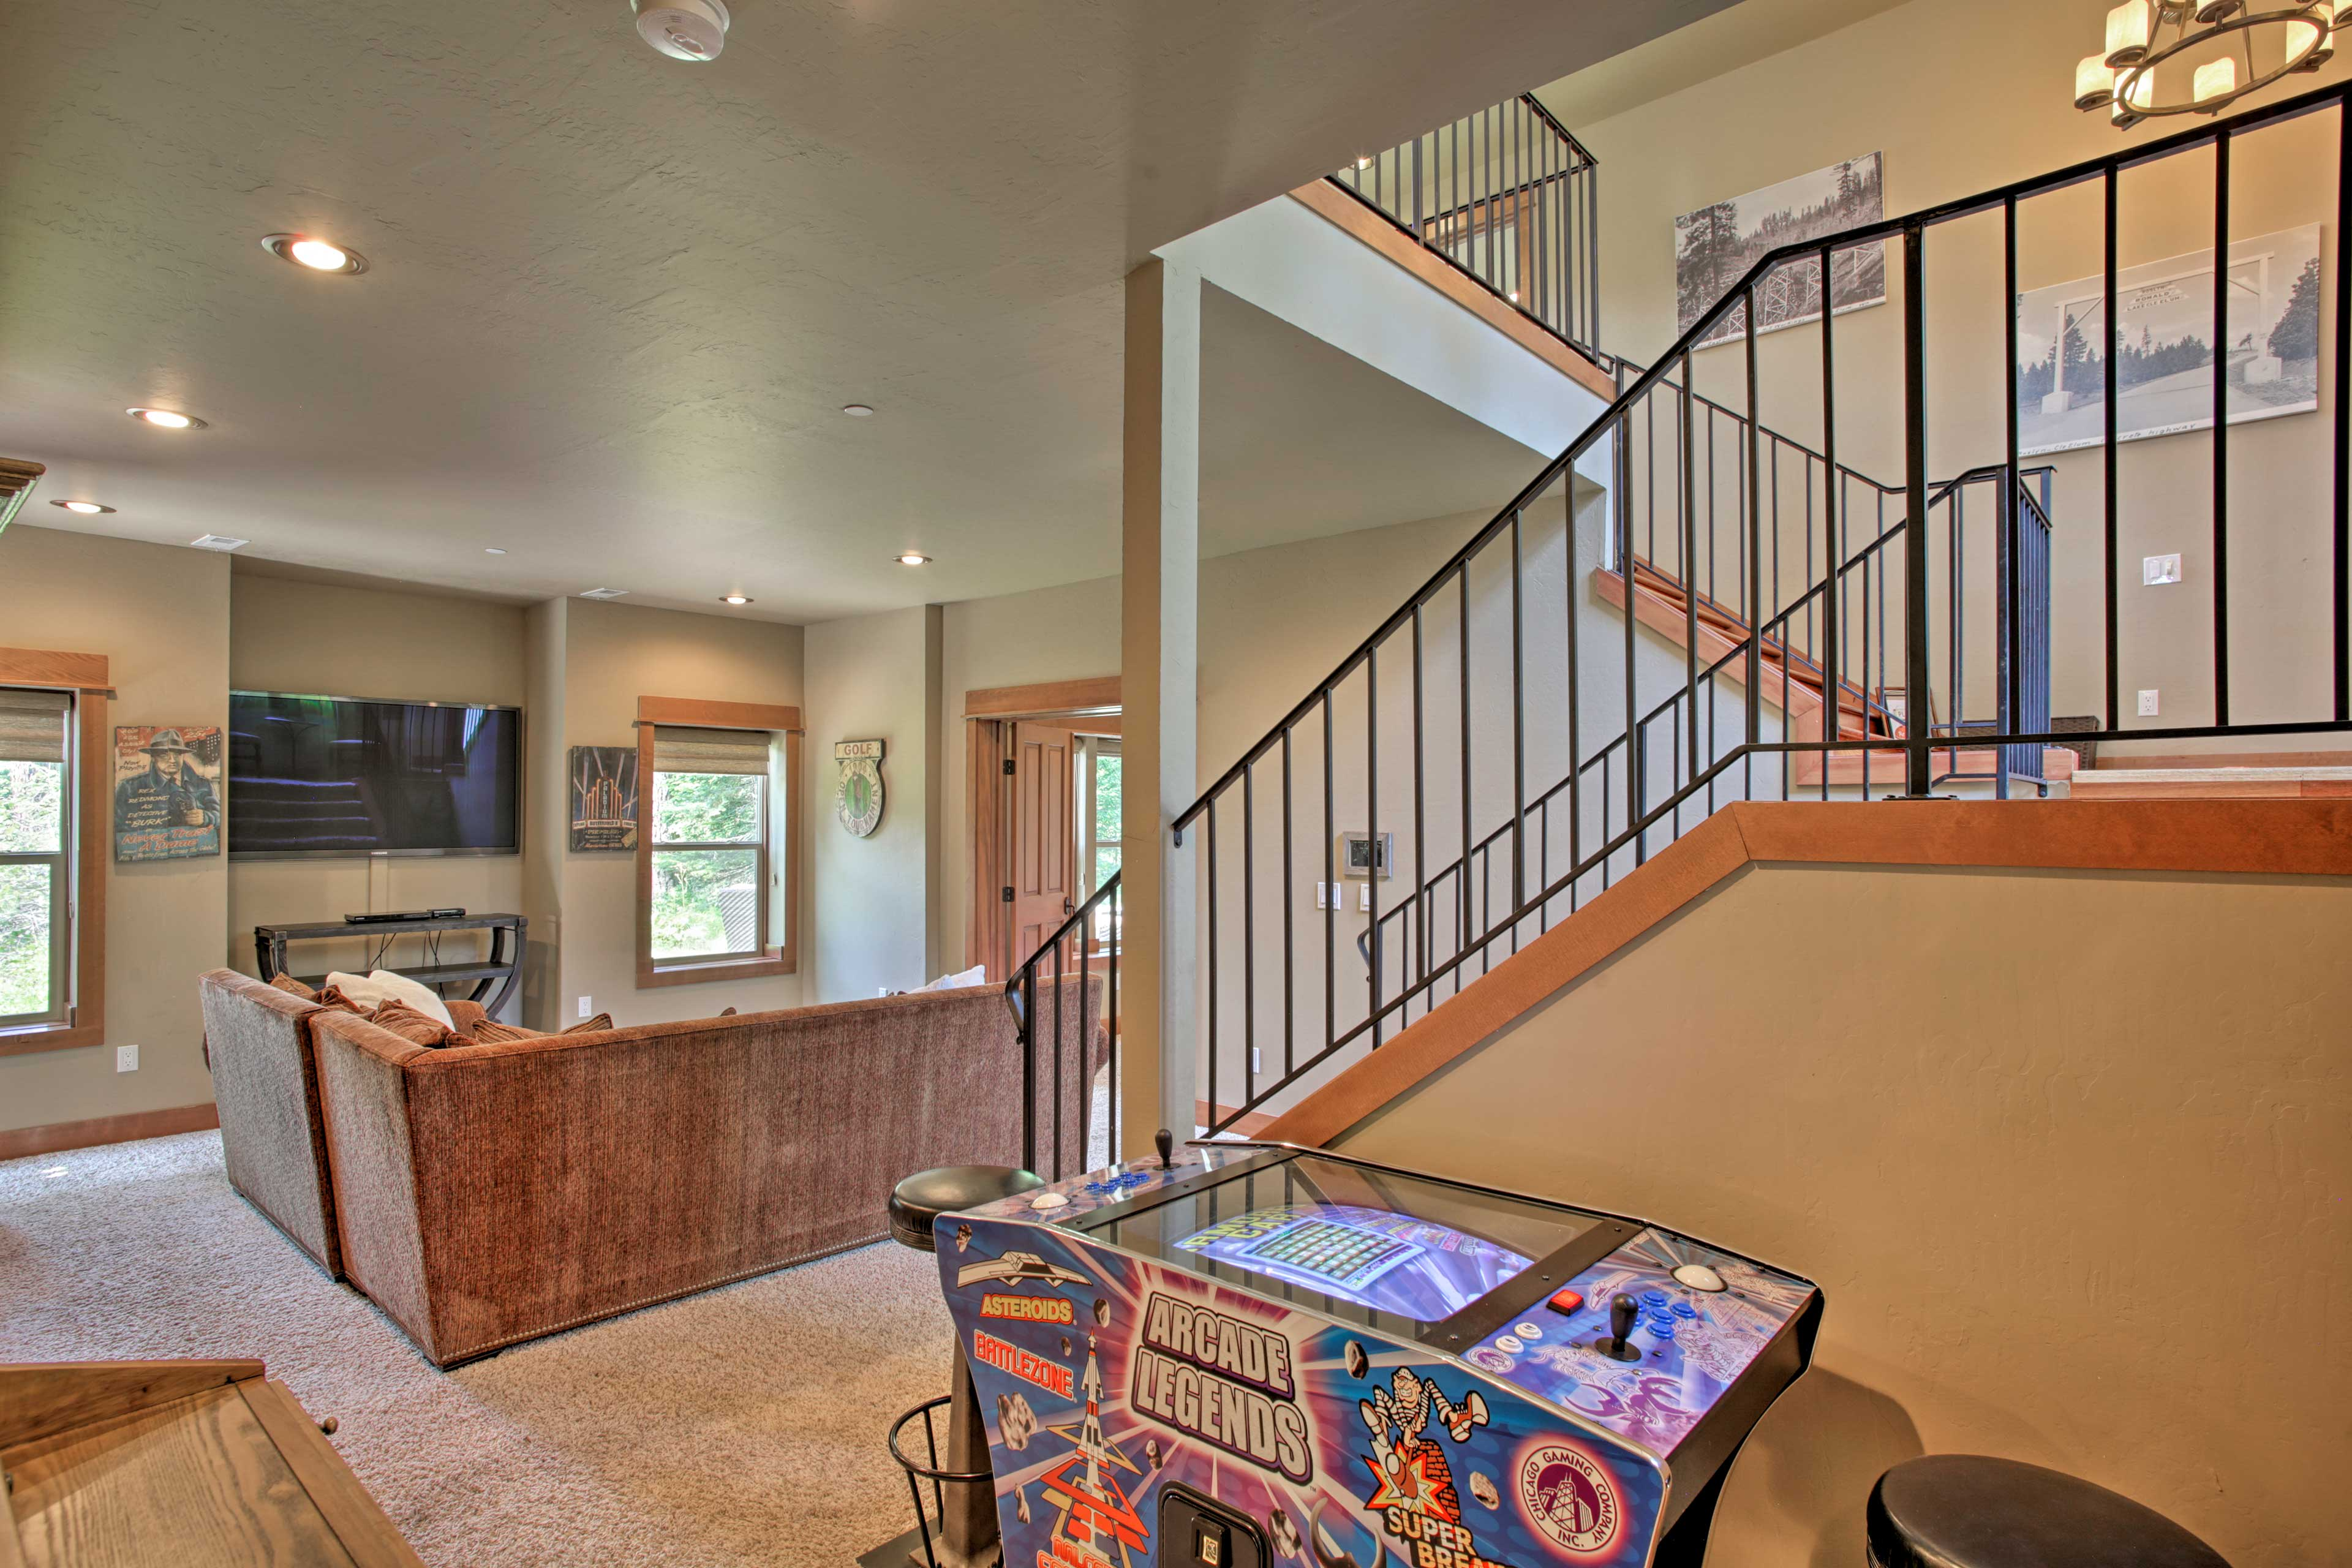 The basement offers a second living space for relaxing and entertaining.